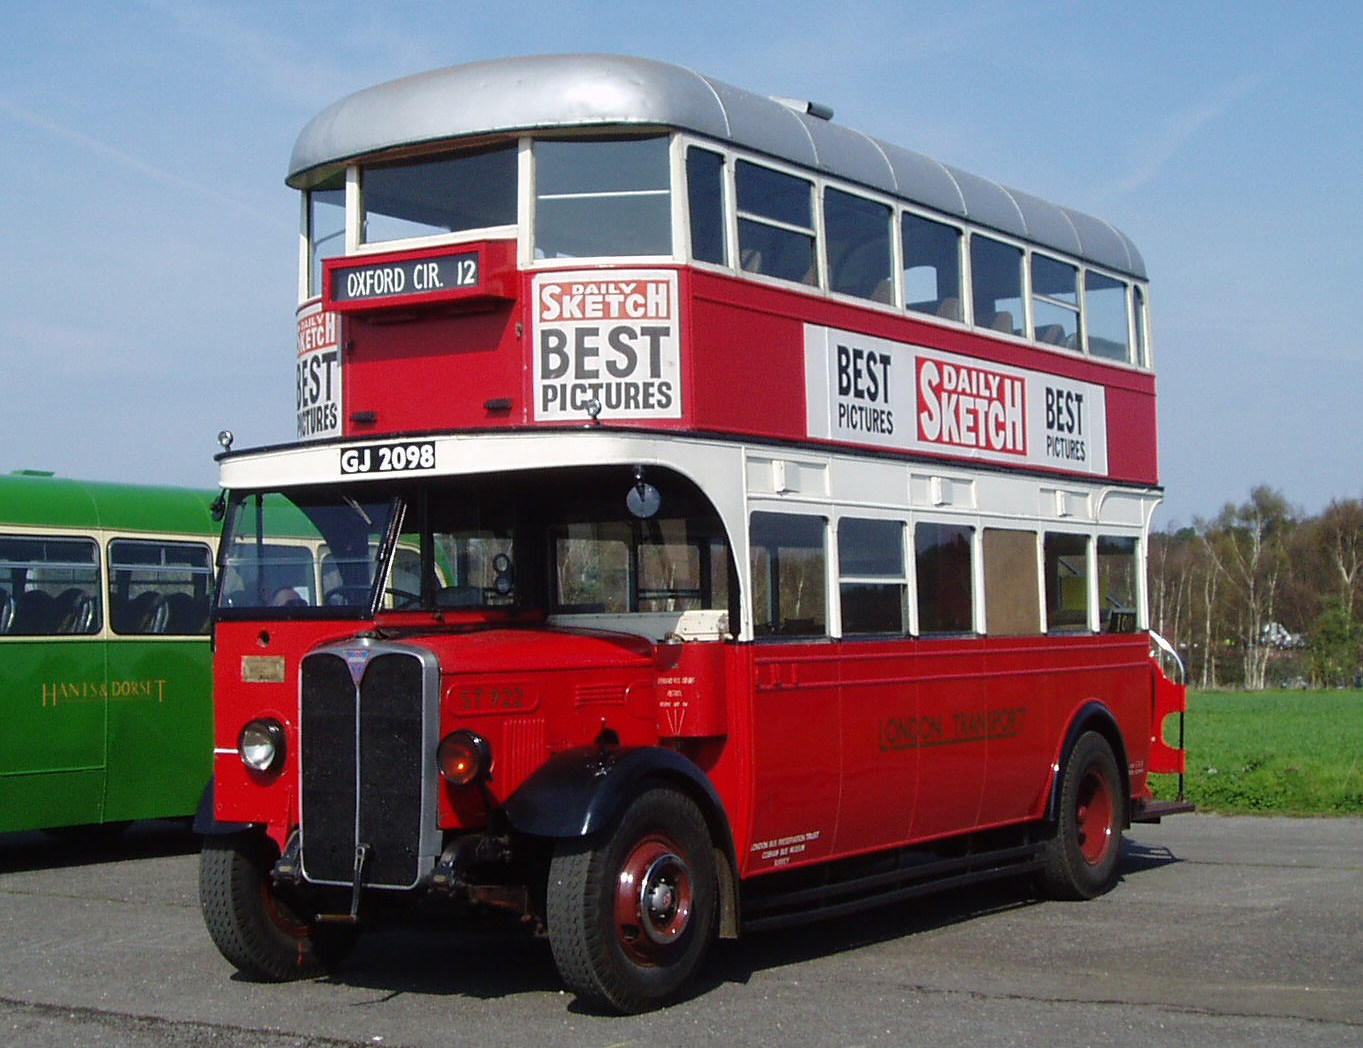 1930 AEC Regent I bus - ST922 - London Bus Museum